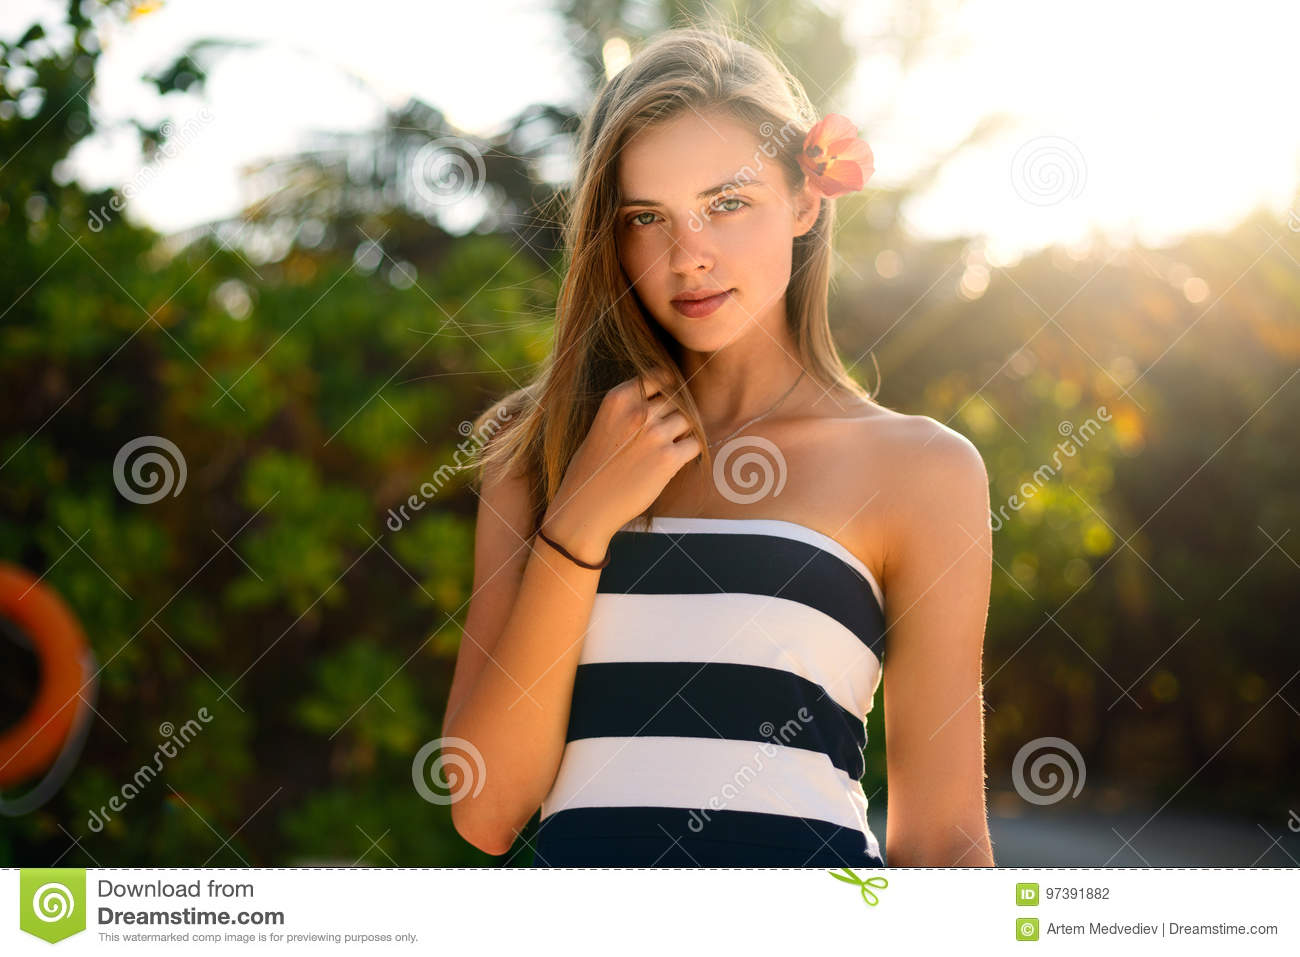 Download Spa Wellness Beach Beauty Woman Relaxing Andlooking At Camera On Beach. Beautiful Serene And Peaceful Young Female Model Stock Photo - Image of care, body: 97391882